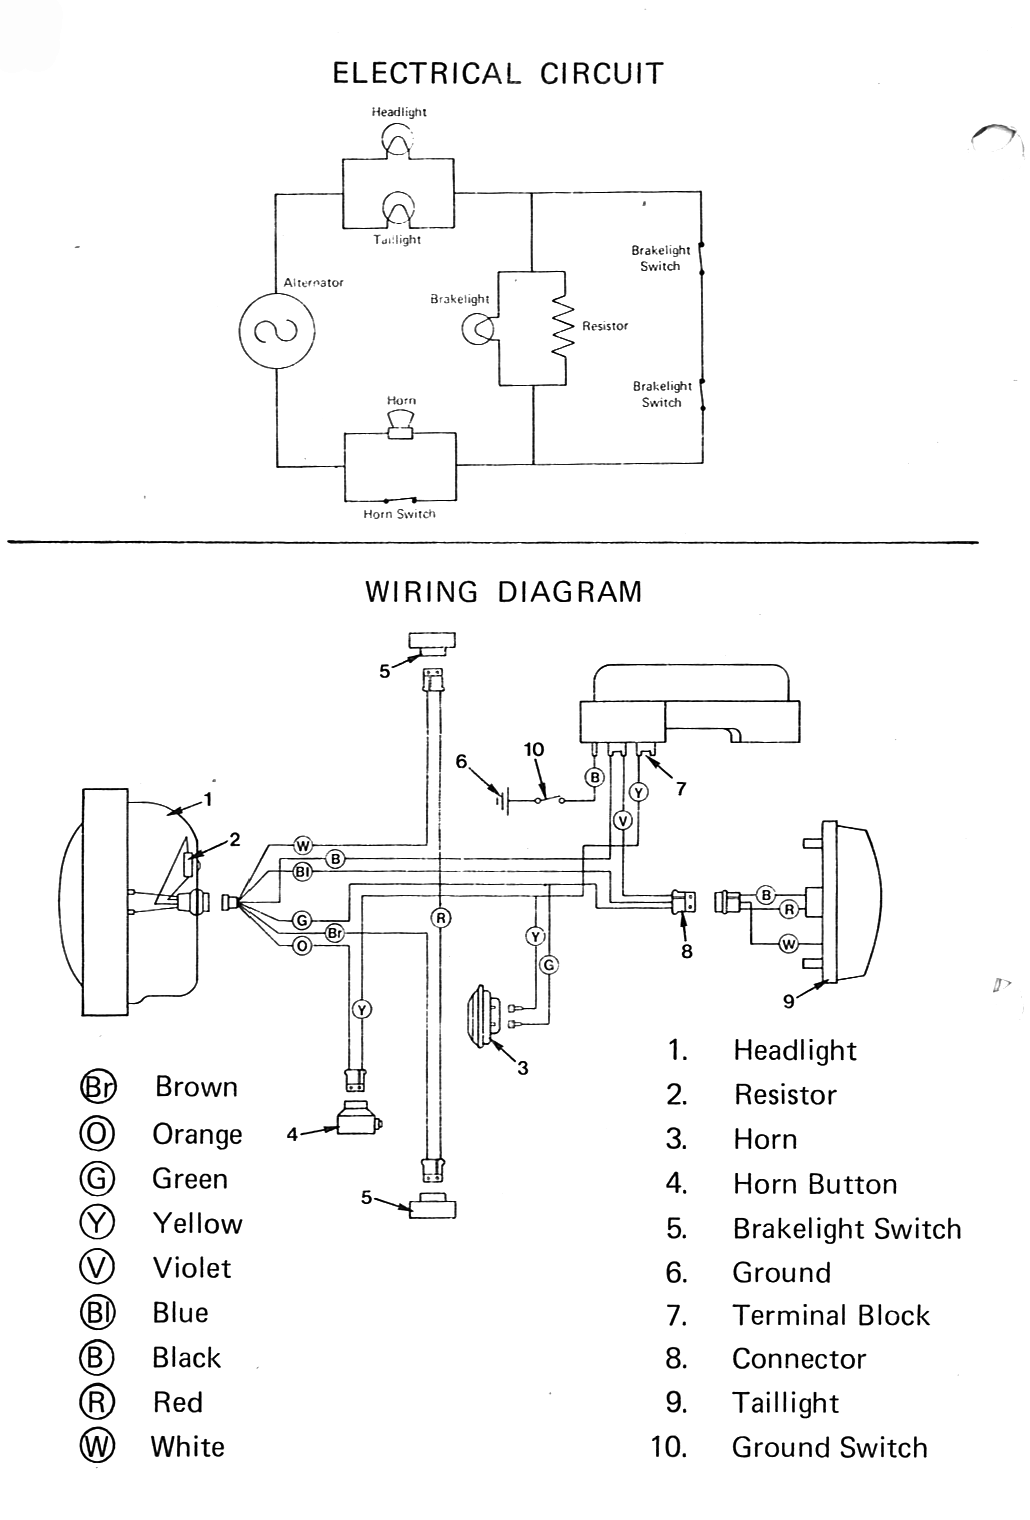 Strange Suzuki Fa50 Wiring Diagram Wiring Diagram Wiring Digital Resources Antuskbiperorg